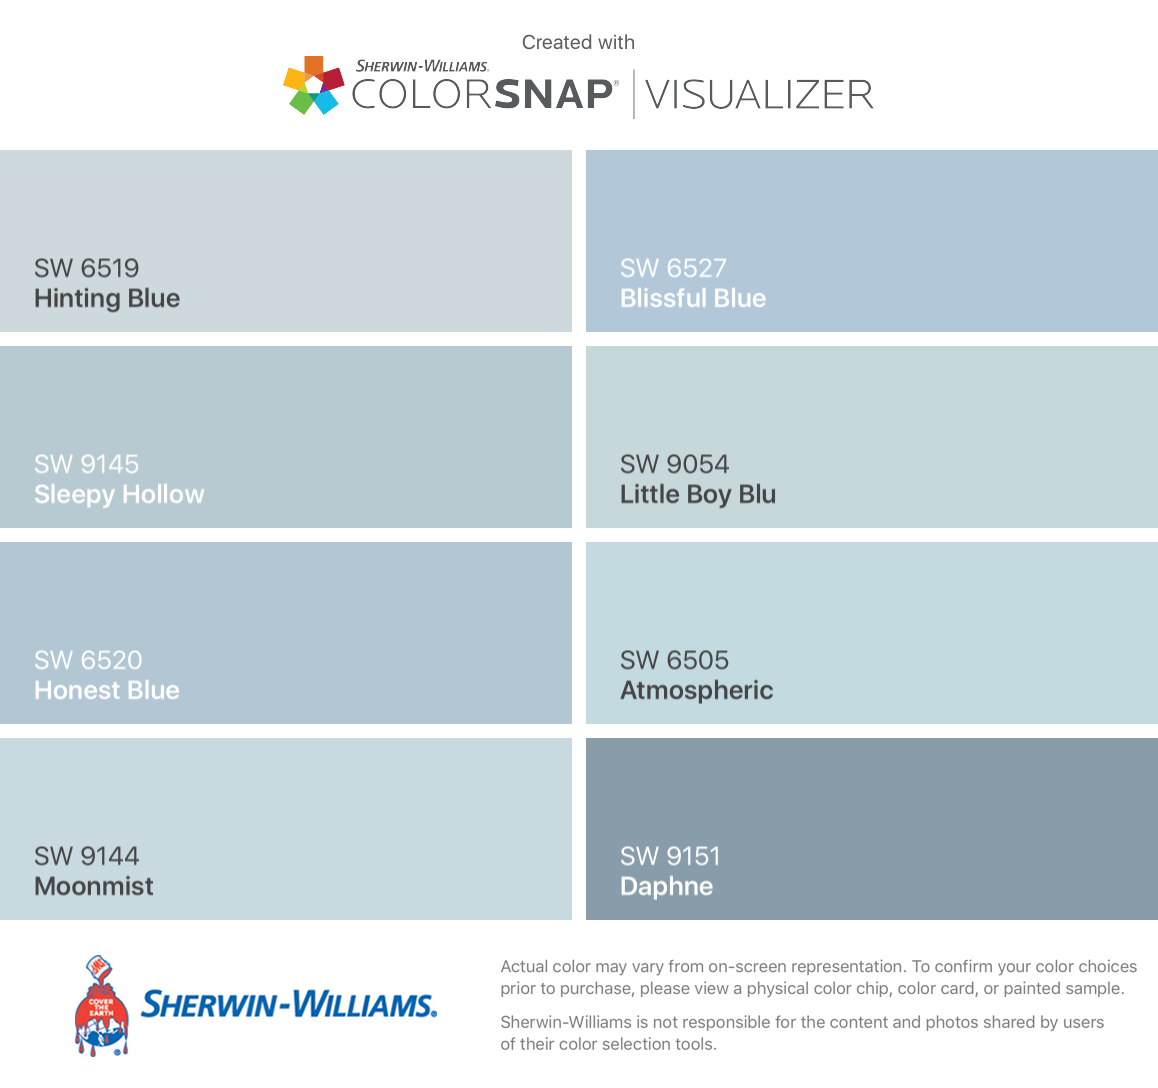 I Found These Colors With Colorsnap Visualizer For Iphone By Sherwin Williams Hin Sherwin Williams Paint Colors Paint Colors For Home Sherwin Williams Colors